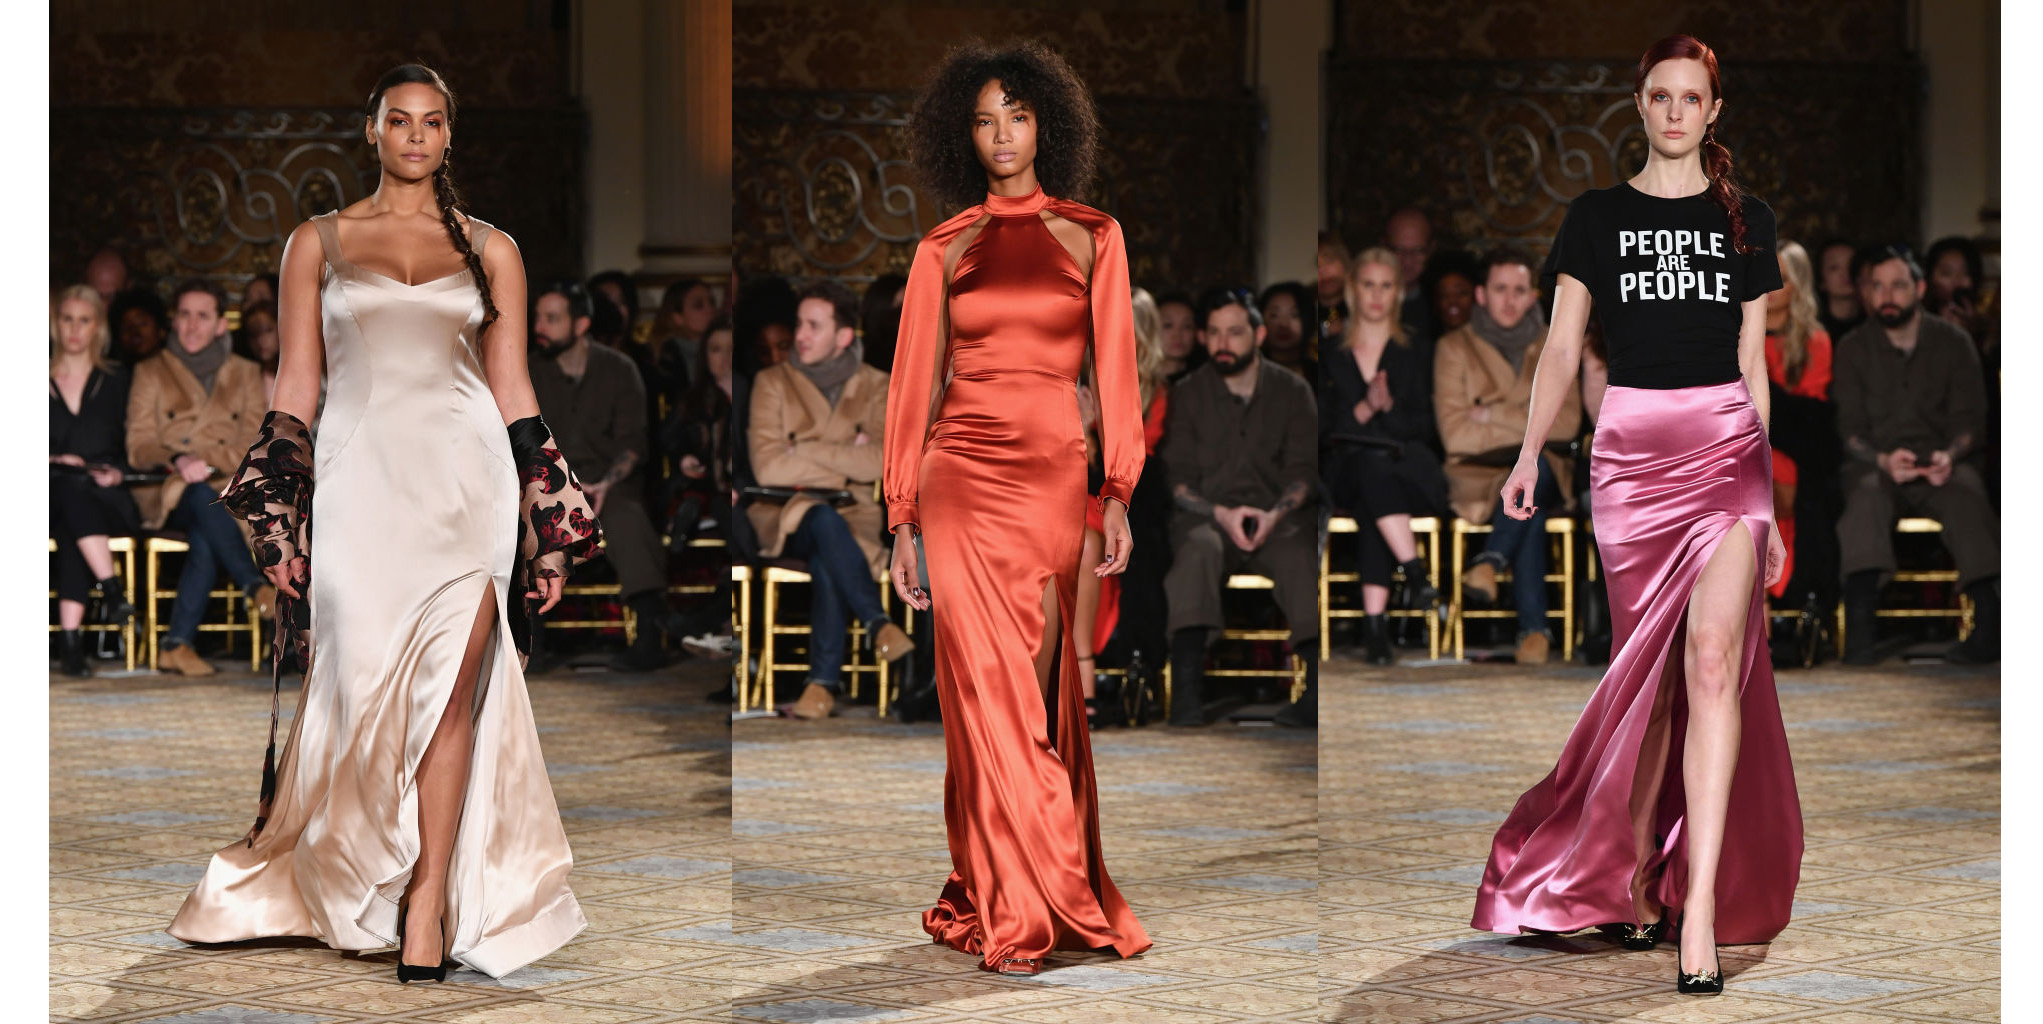 NEW YORK, NY - FEBRUARY 11: A model walks the runway for the Christian Siriano collection during, New York Fashion Week: The Shows at The Plaza Hotel on February 11, 2017 in New York City. (Photo by Slaven Vlasic/Getty Images for New York Fashion Week: The Shows )